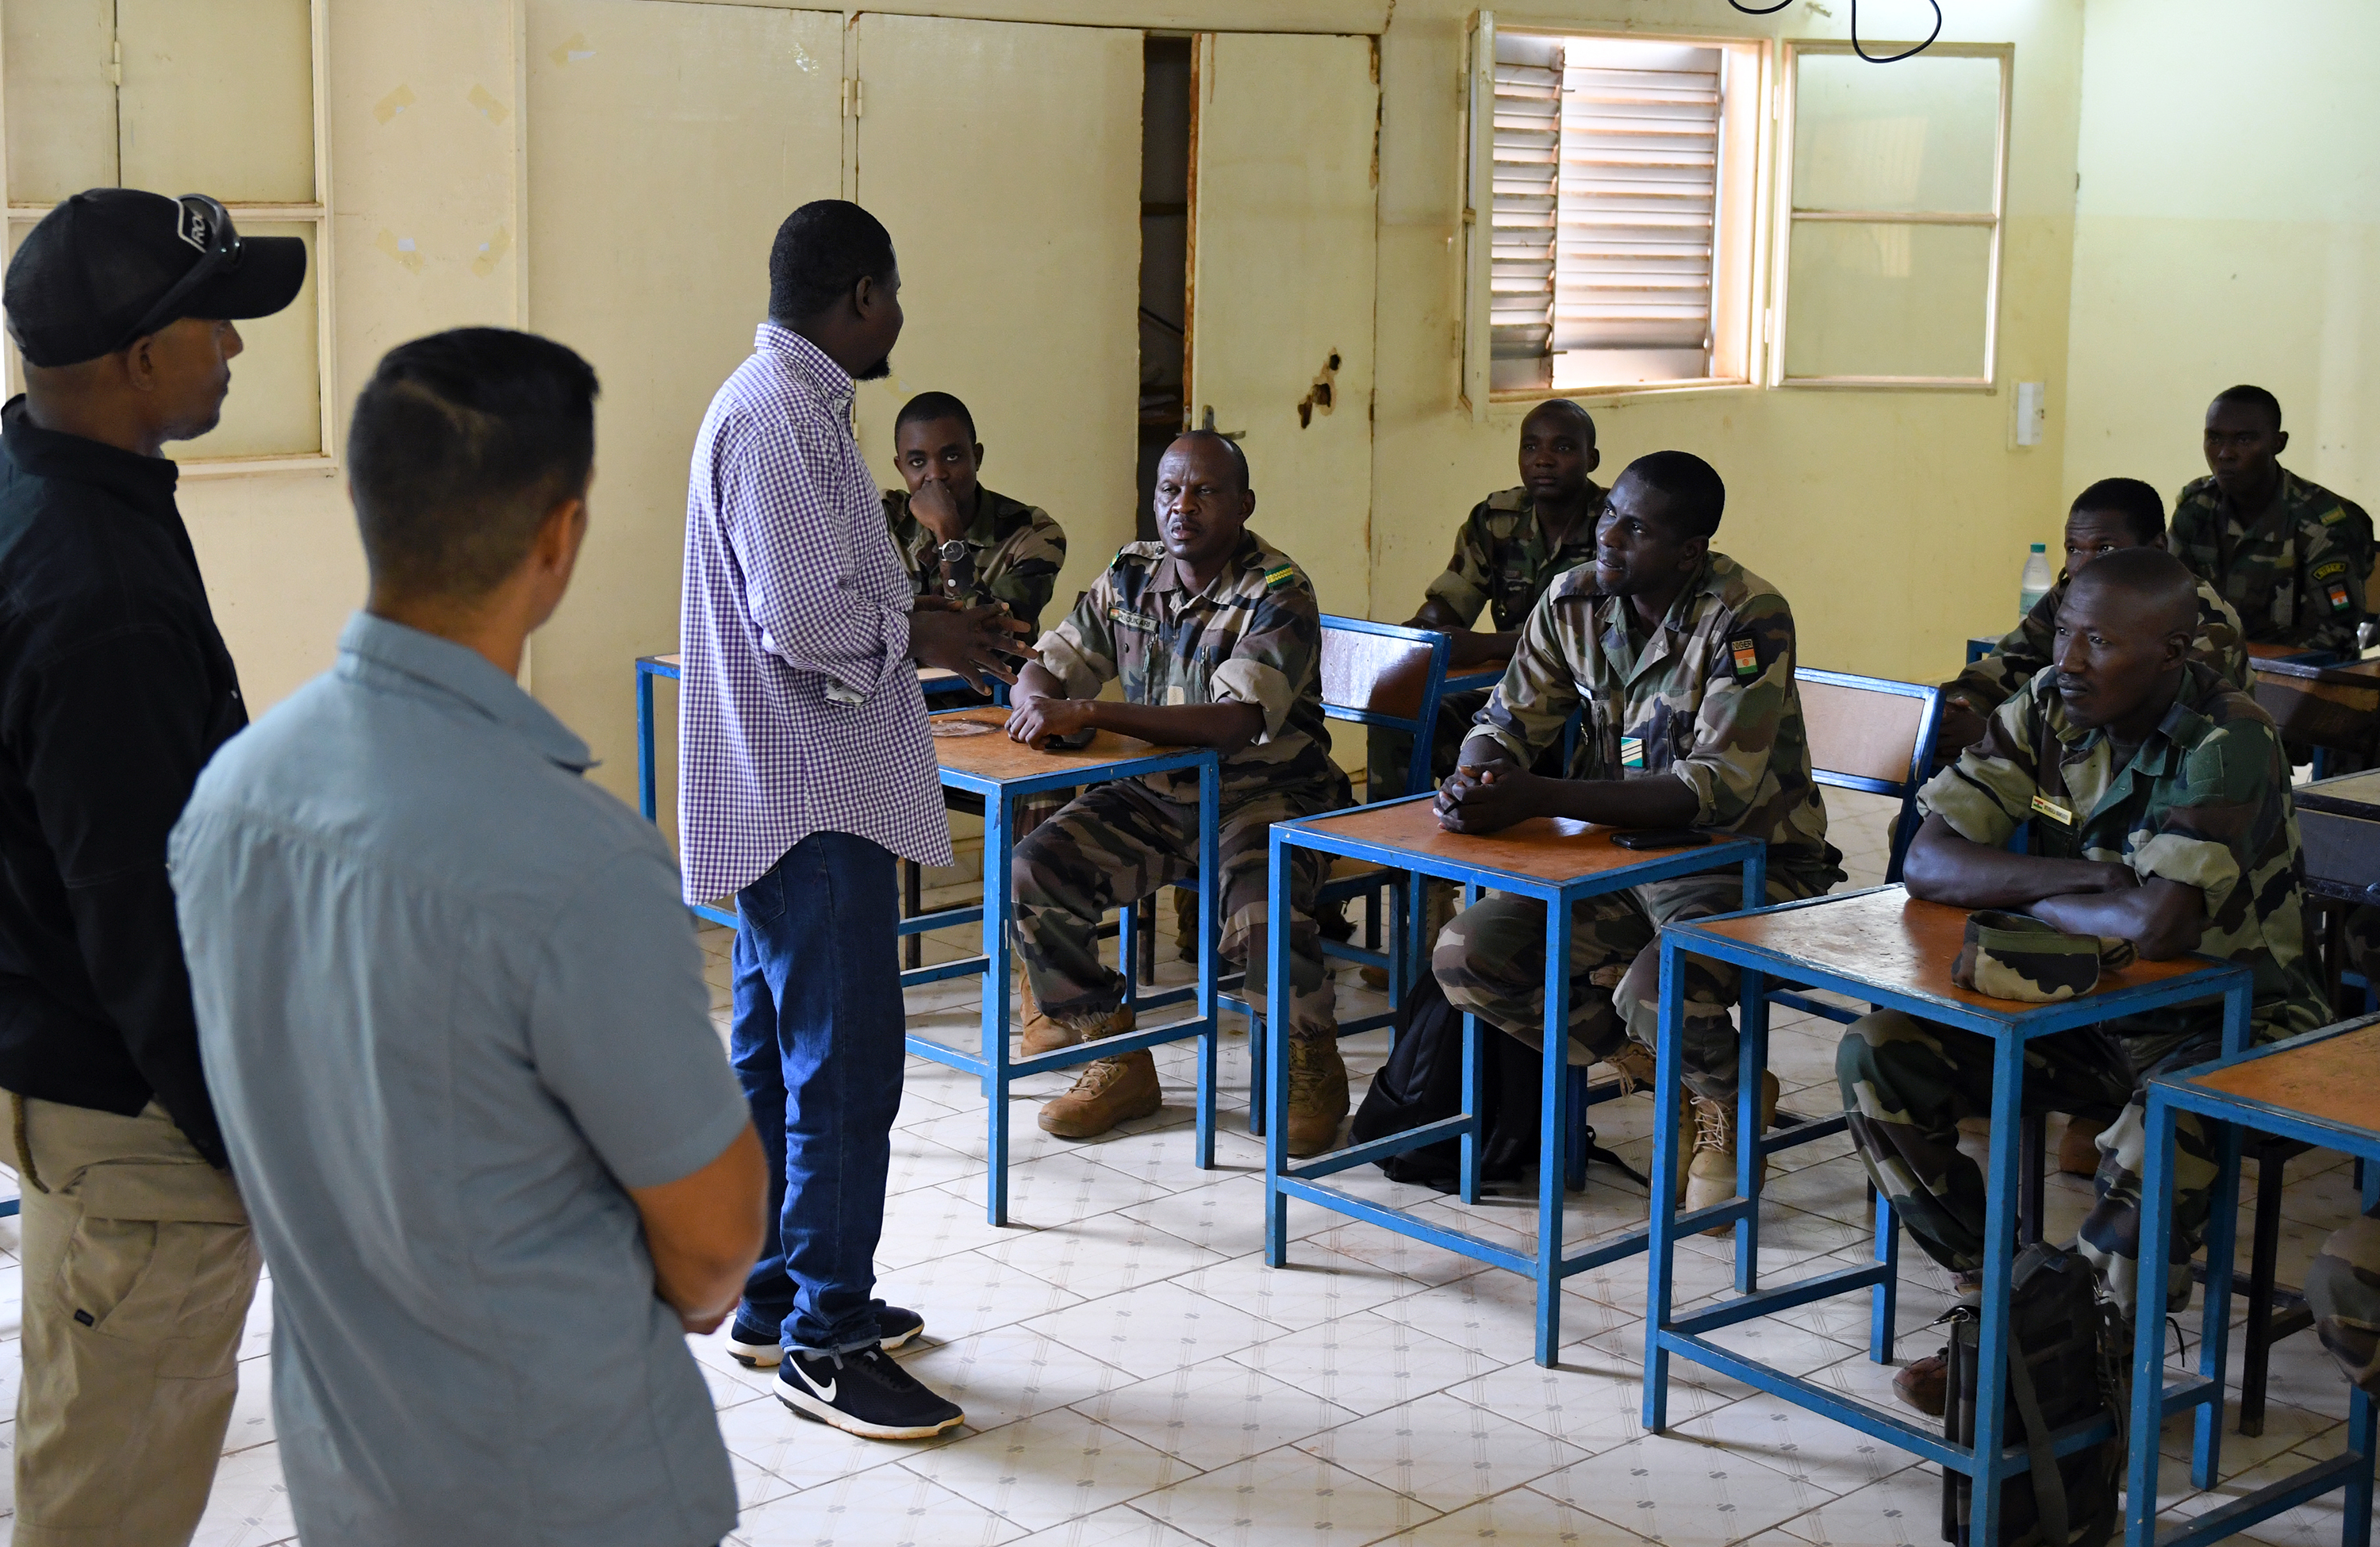 Forces Armées Nigeriennes (Nigerien Armed Forces) Genie Unit members learn about improvised explosive devices during an IED Awareness Course taught by members of the 768th Expeditionary Air Base Squadron Explosive Ordnance Disposal team and Security Forces Air Advisors in Niamey, Niger, Oct. 11, 2019. The course is part of a curriculum spanning several months designed to improve the FAN's effectiveness and survivability once they deploy to combat the violent extremist organizations in West Africa. (U.S. Air Force photo by Staff Sgt. Alex Fox Echols III)